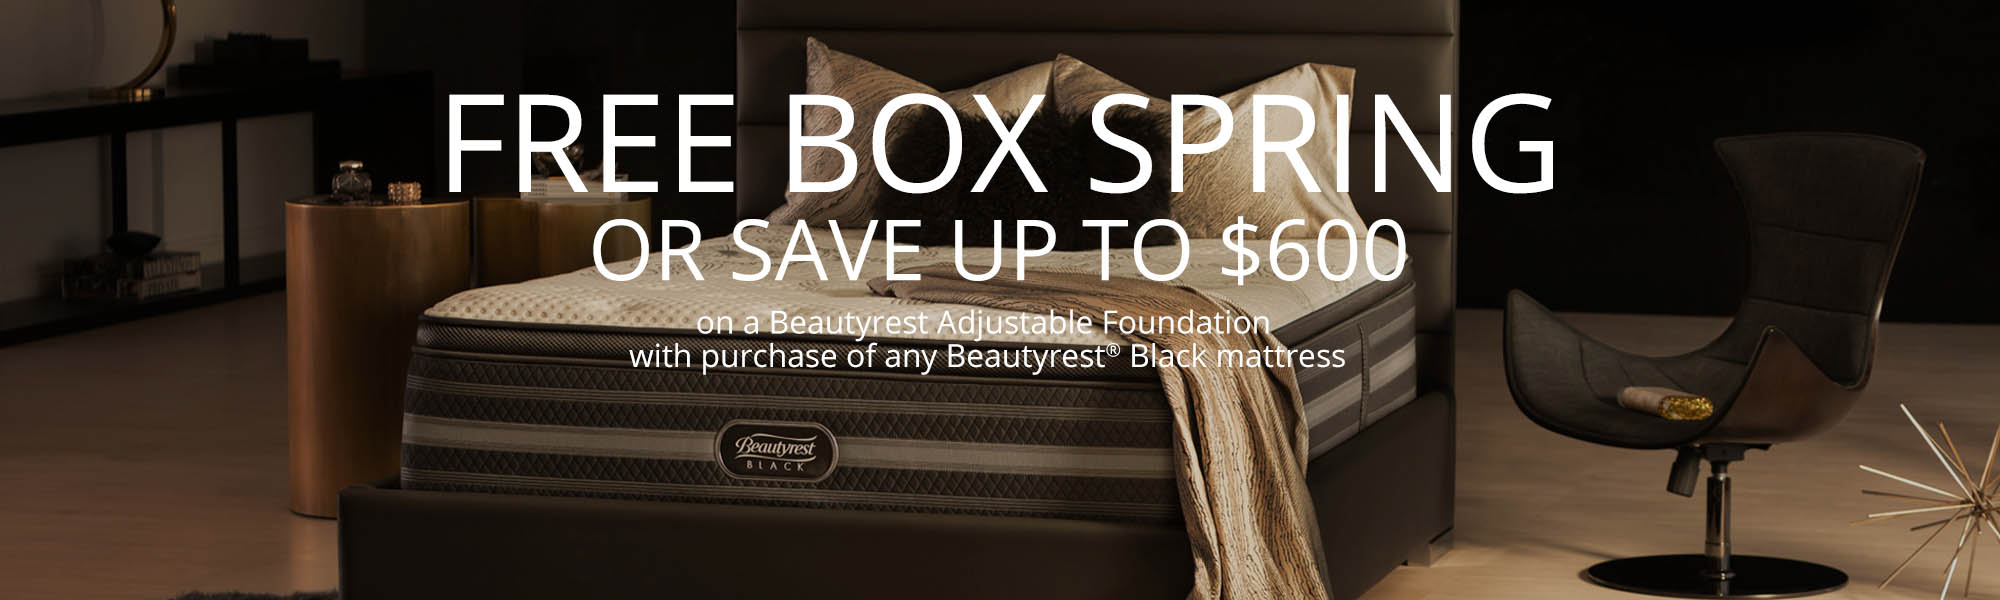 Beautyrest black box spring